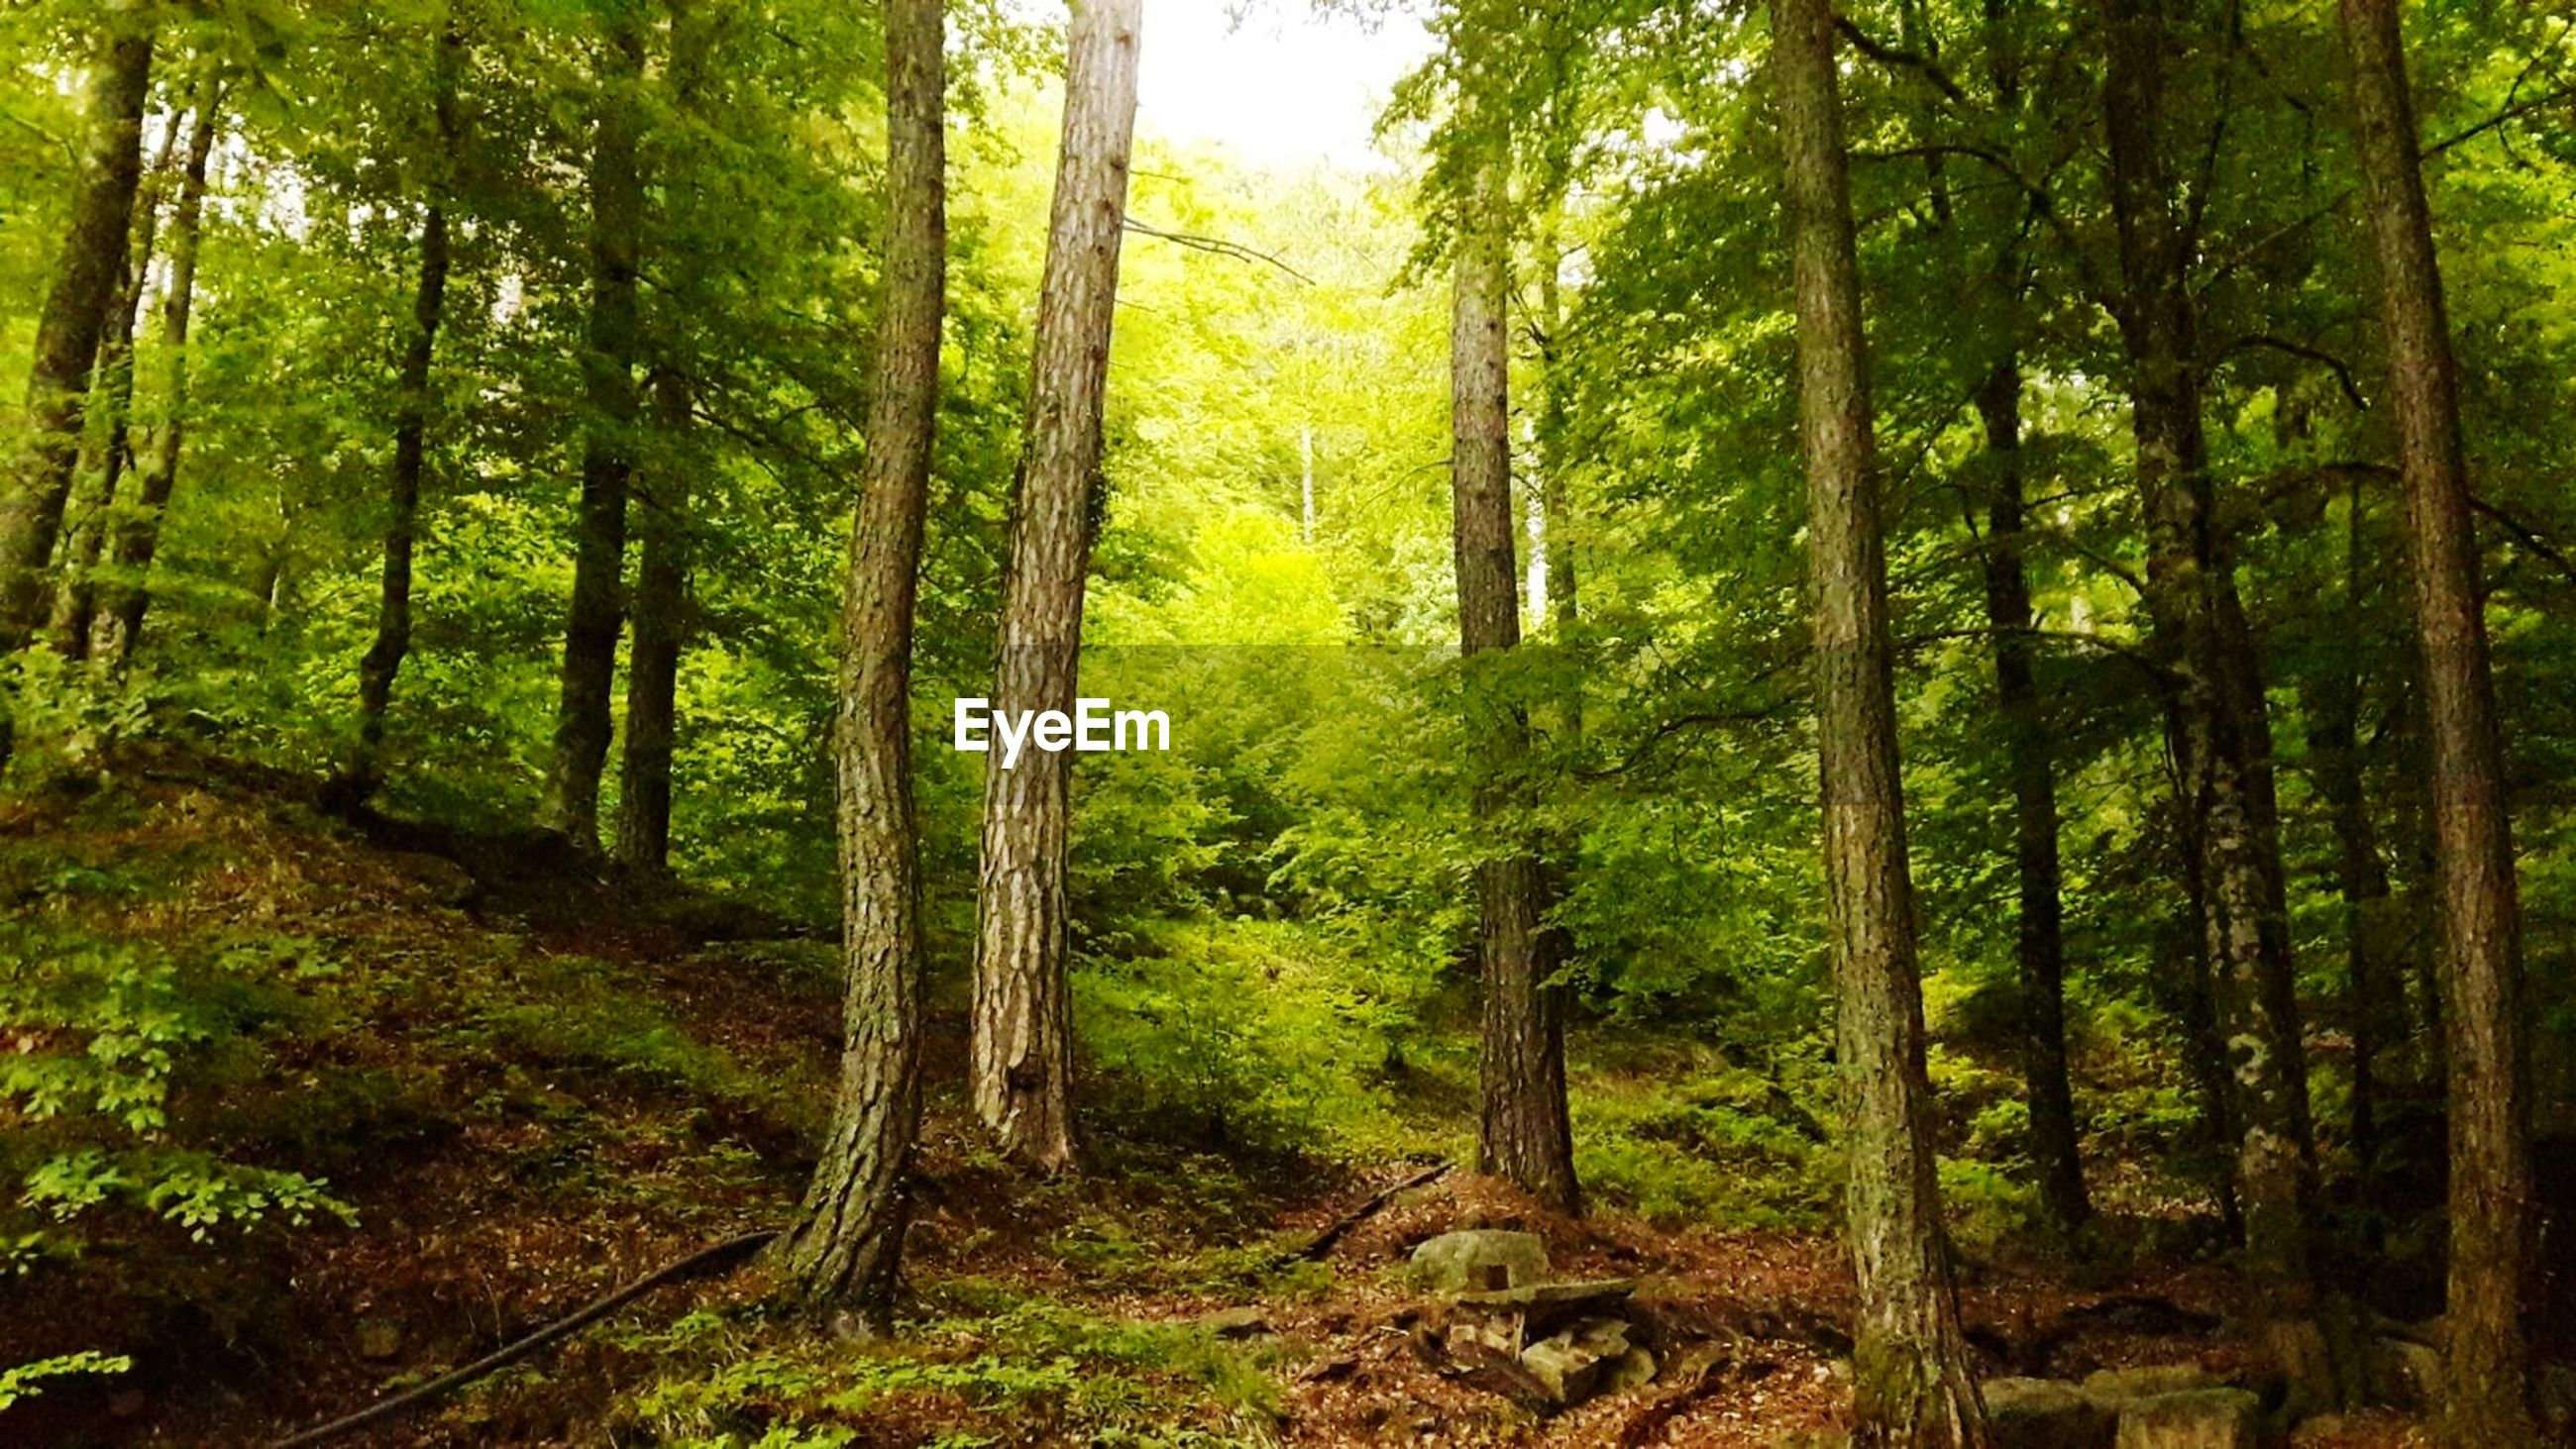 forest, tree, nature, beauty in nature, growth, tranquil scene, day, tranquility, scenics, tree trunk, green color, no people, outdoors, woodland, landscape